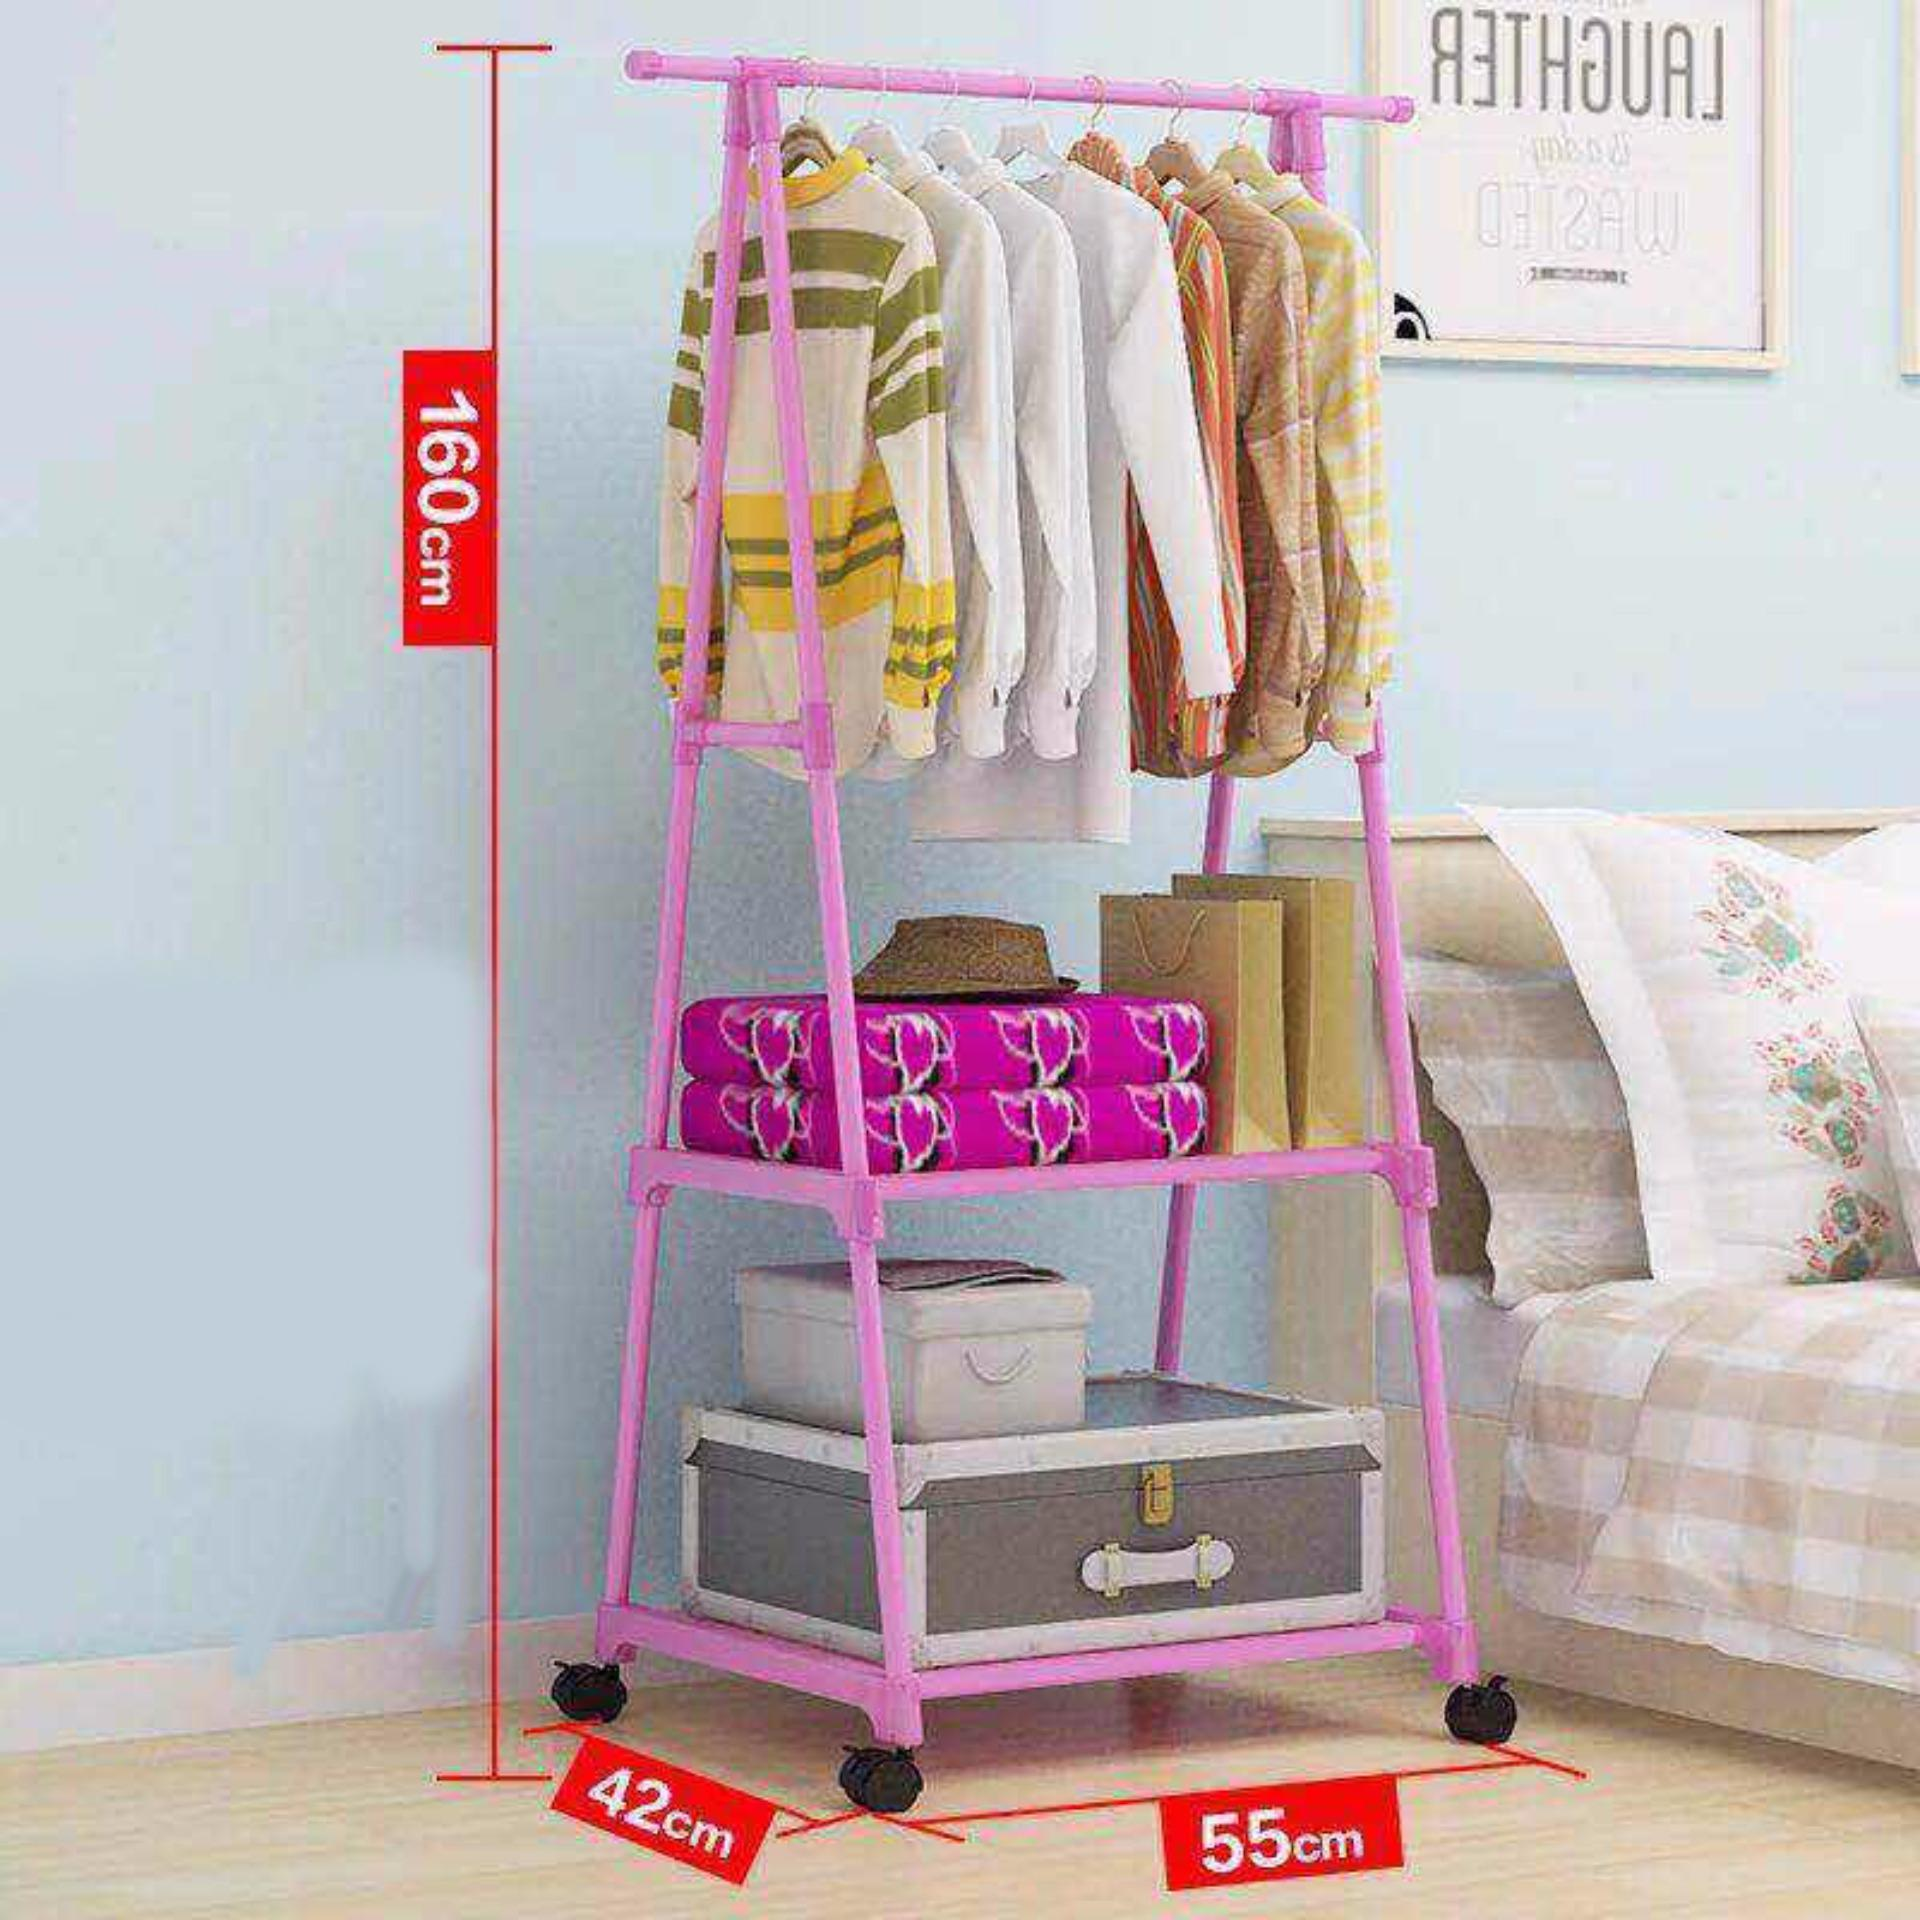 Telescopic Triangle Stainless Steel Clothes Rack (PINK)